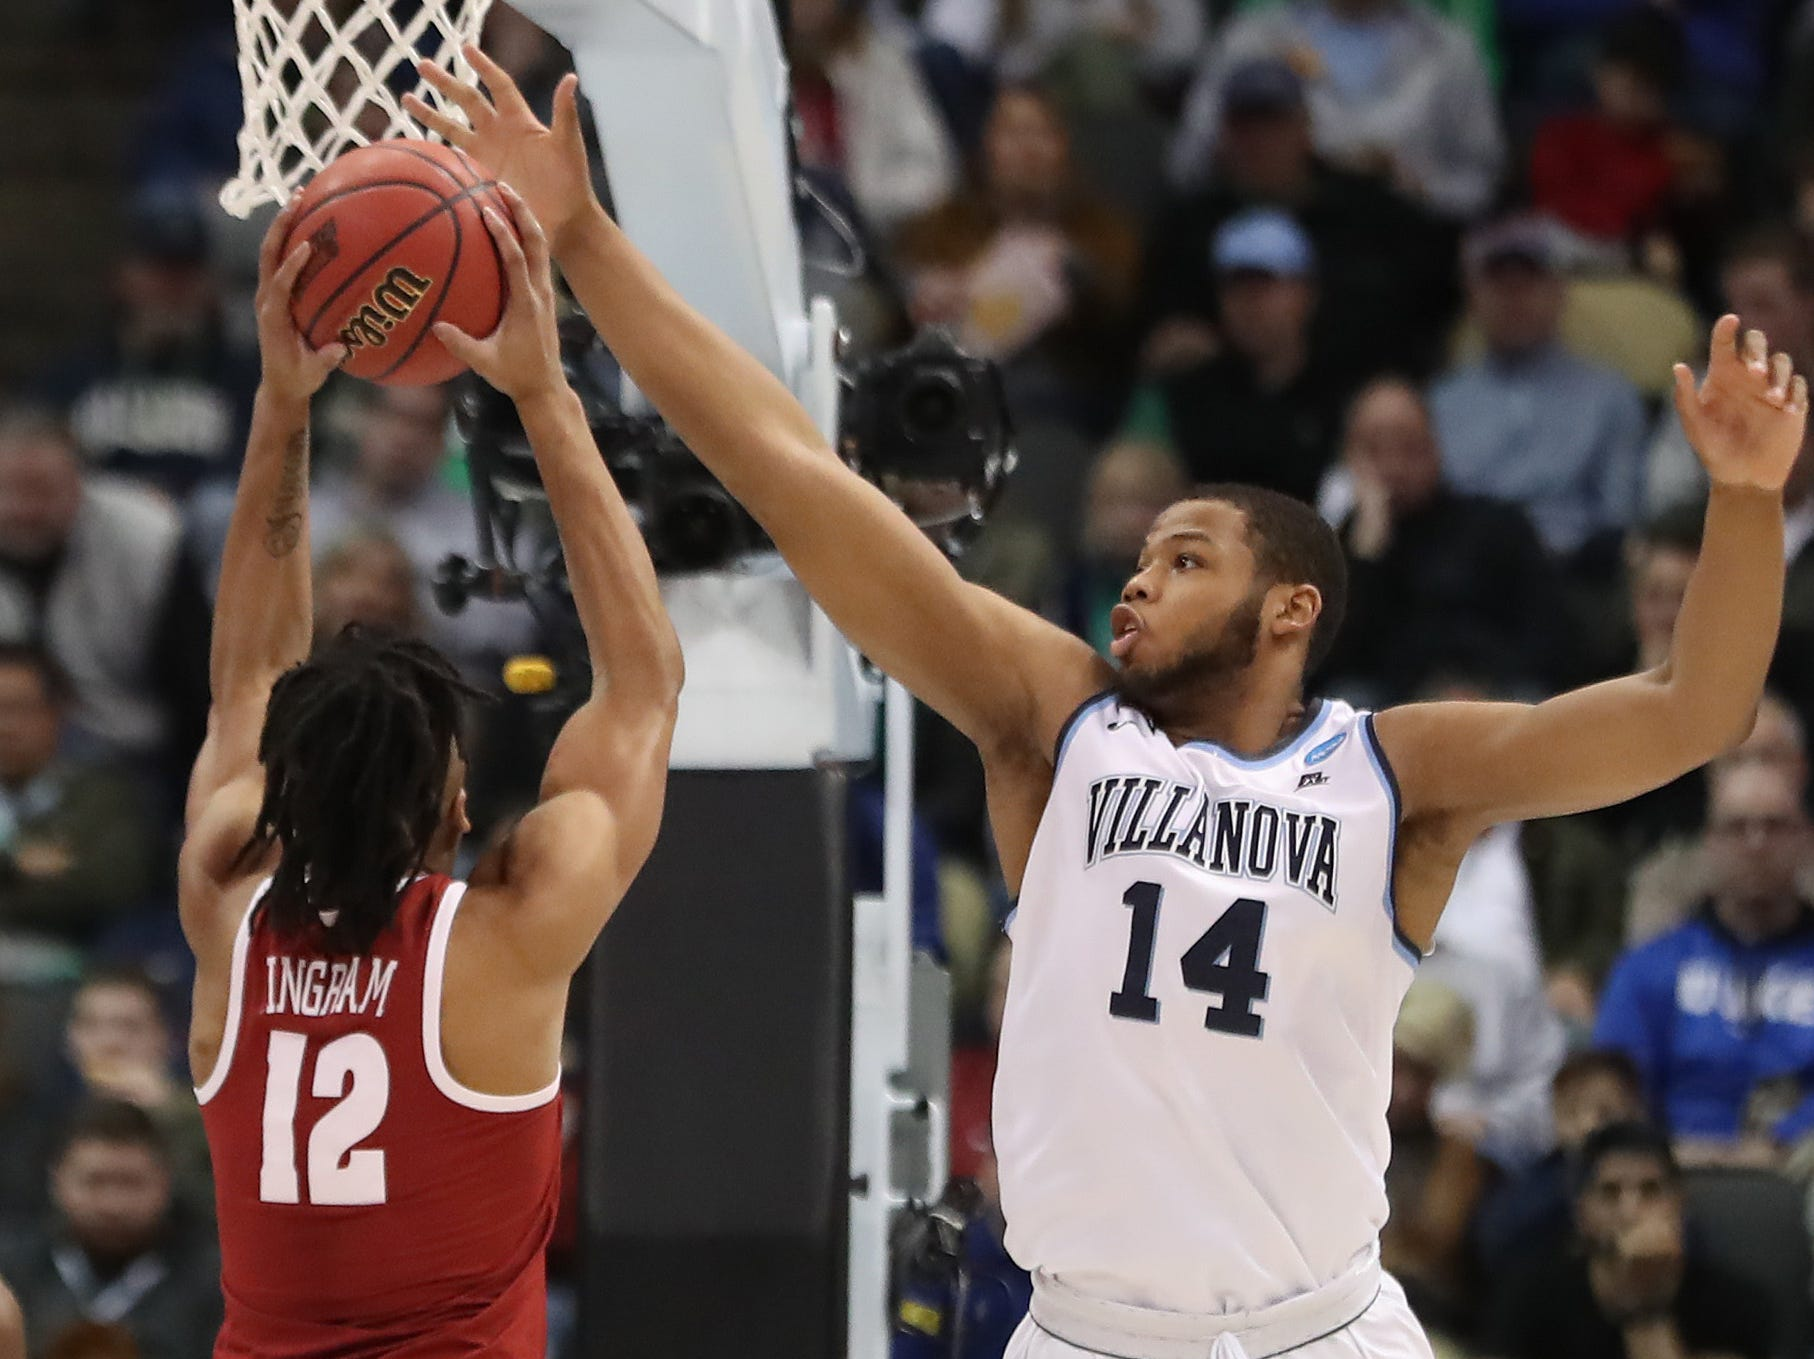 Mar 17, 2018; Pittsburgh, PA, USA; Villanova Wildcats forward Omari Spellman (14) blocks the shot of Alabama Crimson Tide guard Dazon Ingram (12) in the second round of the 2018 NCAA Tournament at PPG Paints Arena. Mandatory Credit: Geoff Burke-USA TODAY Sports